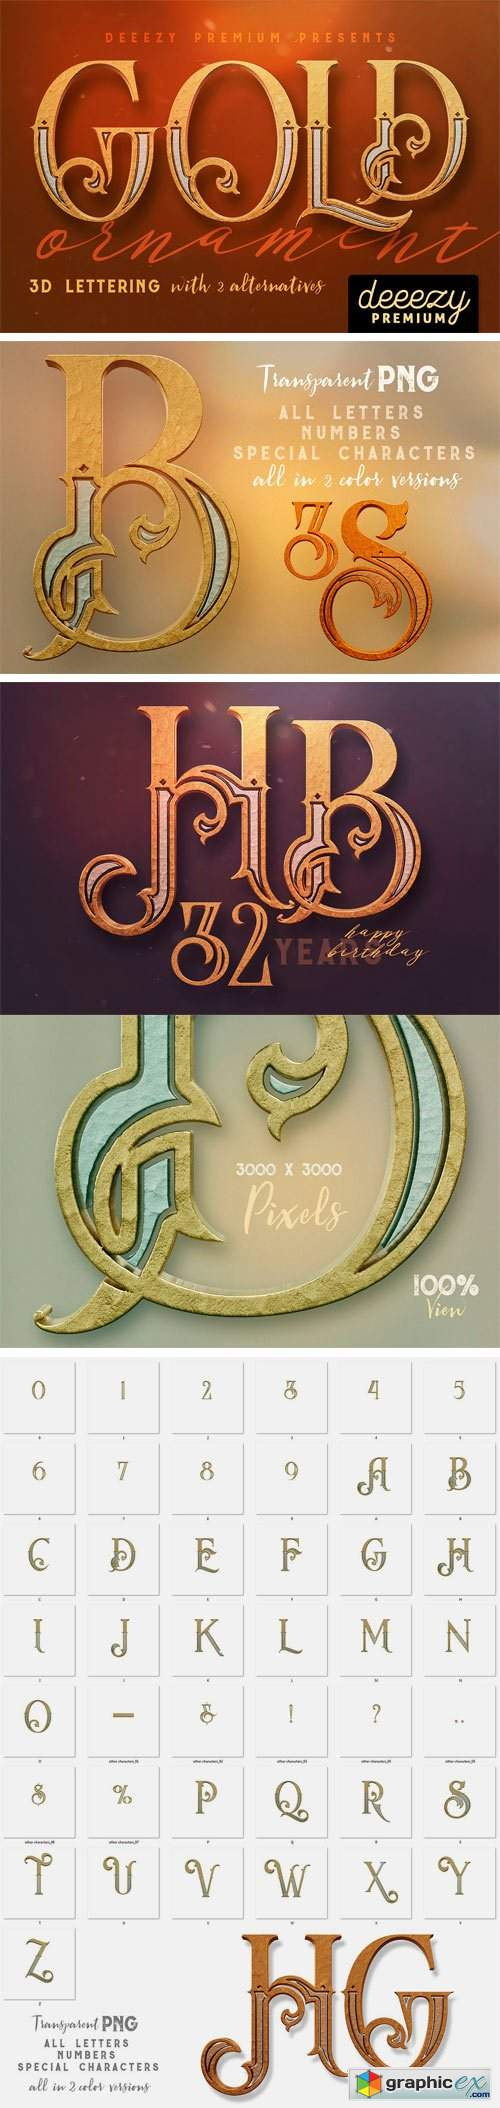 Golden Ornament - 3D Lettering